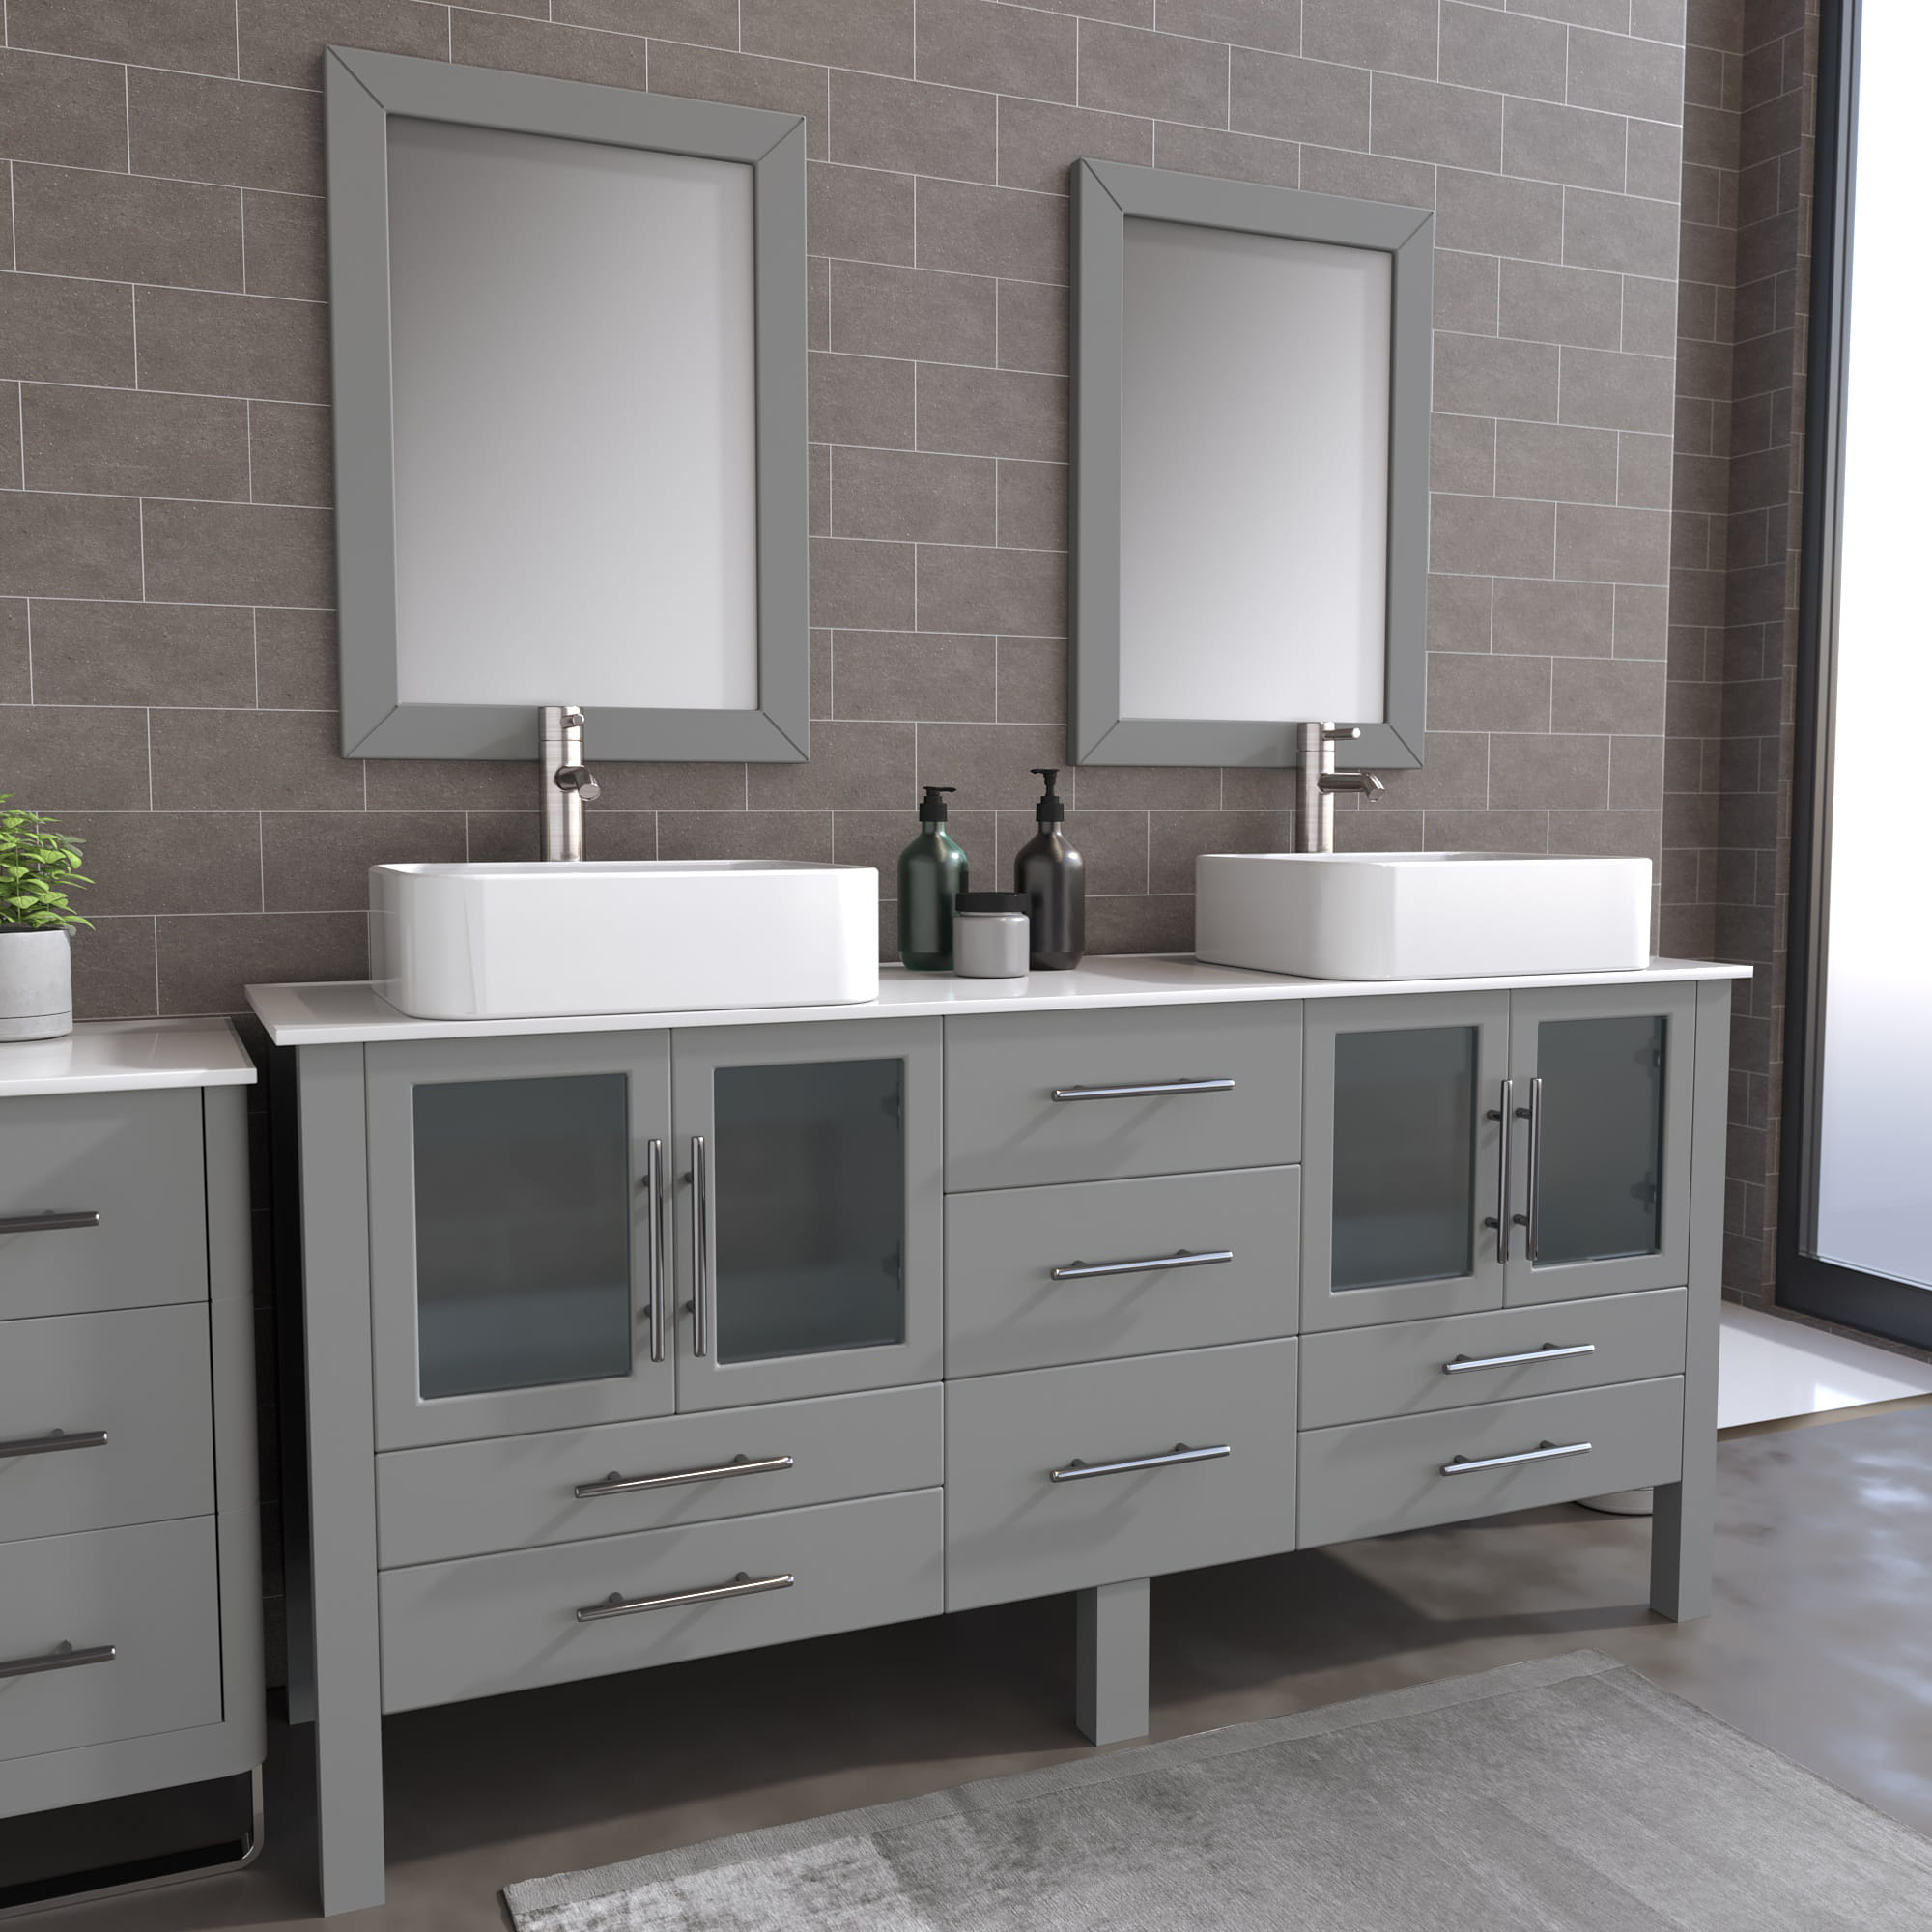 8119XLG_BN_1 Gray XL Double Porcelain Vessel Sink Vanity Set